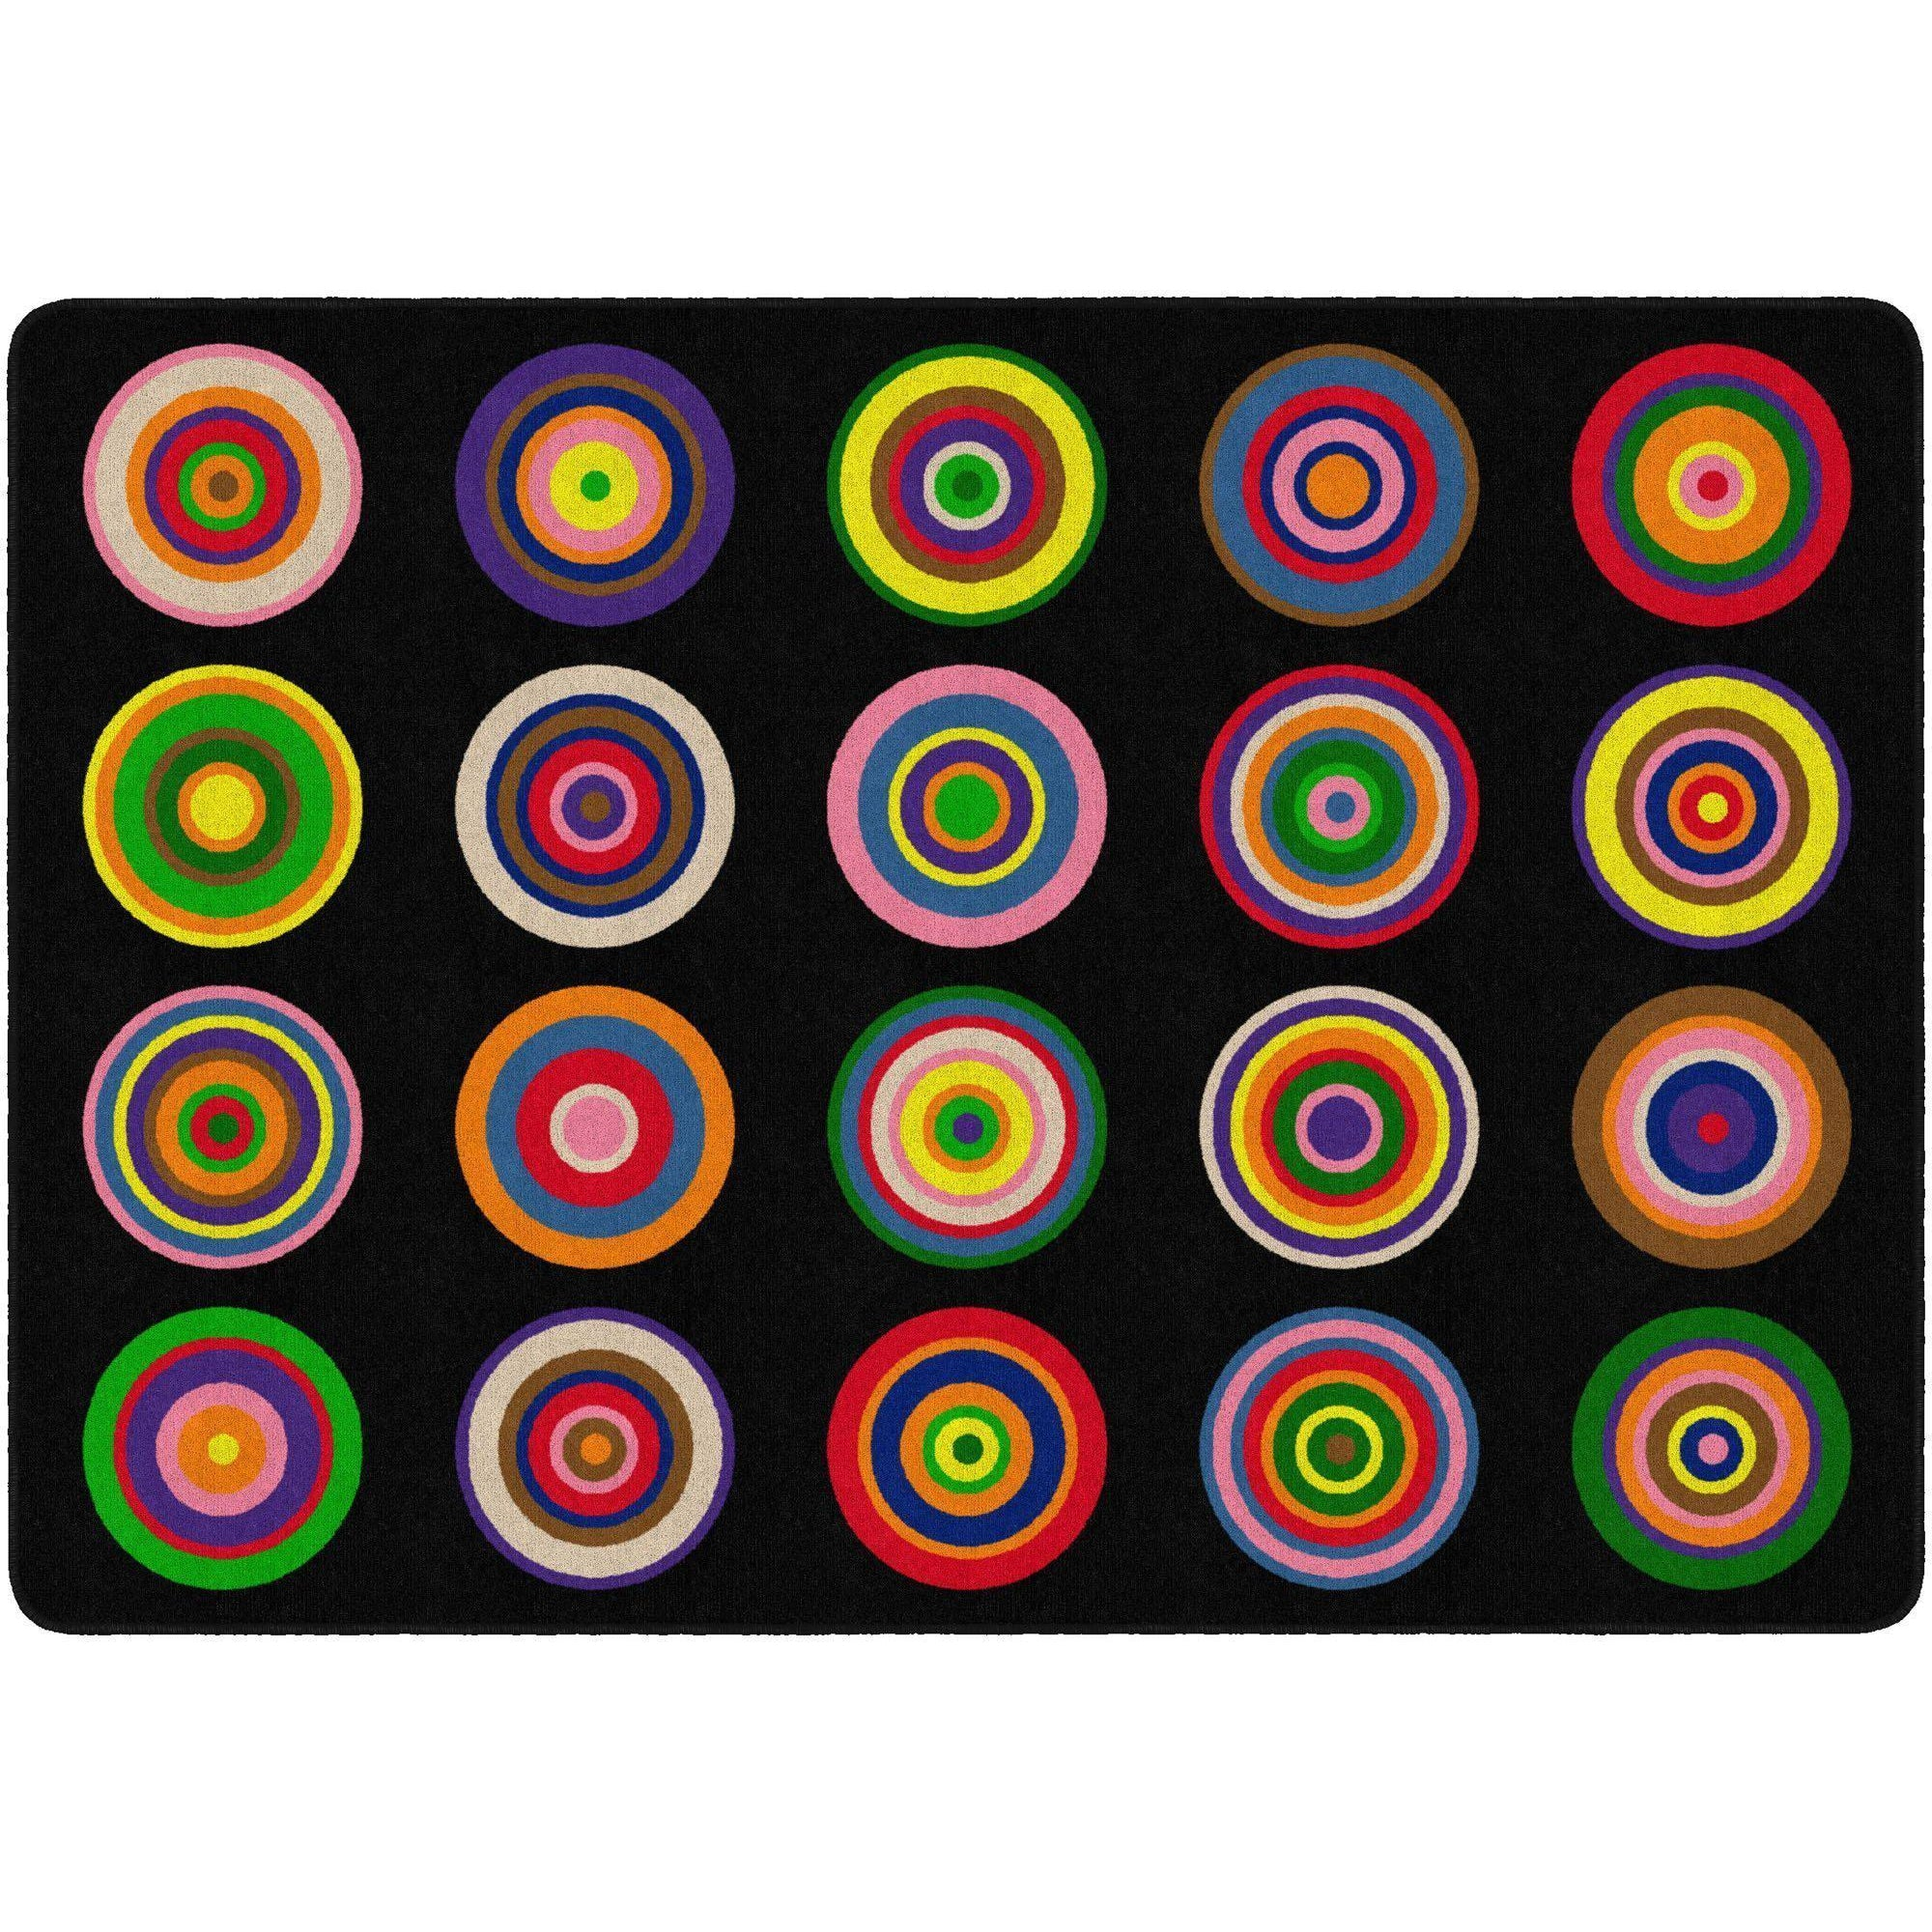 "Color Rings Rugs-Classroom Rugs & Carpets-5' 10"" x 8' 4"" (Seats 20)-Black-"